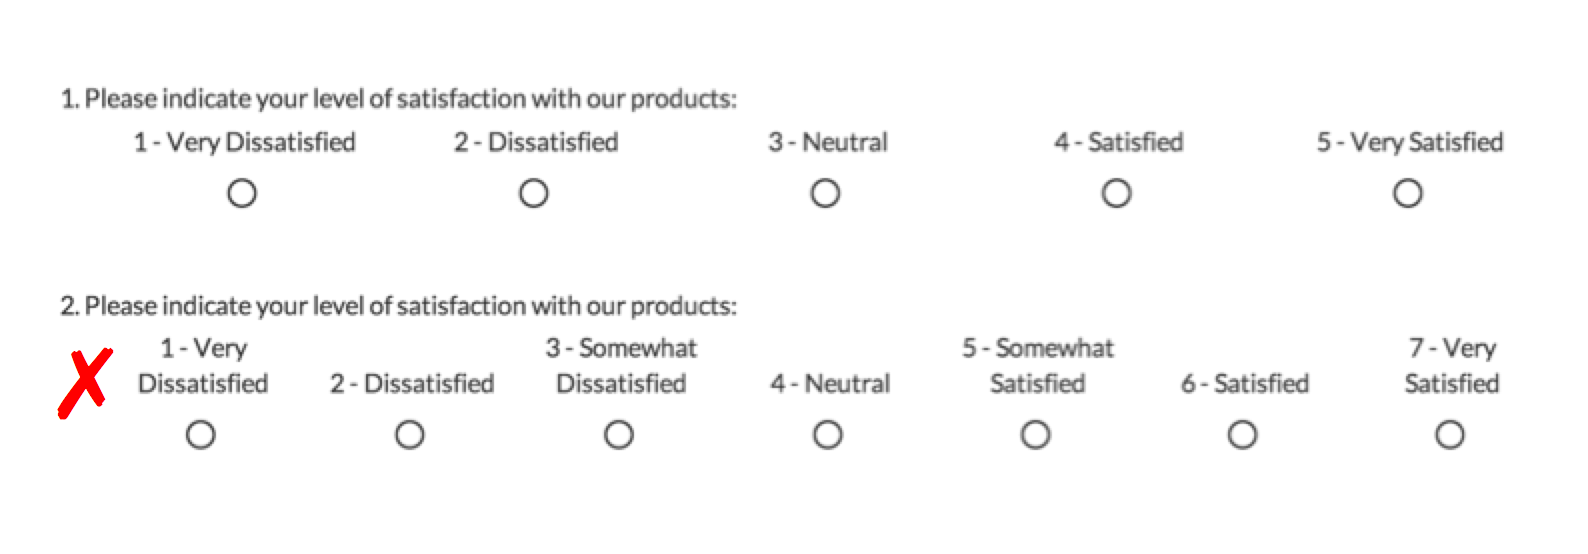 likert scale questioner survey about alcohol ad This sample can be used by any industry for planning custom questionnaire alcohol screening questionnaire market survey questionnaire likert scale template.